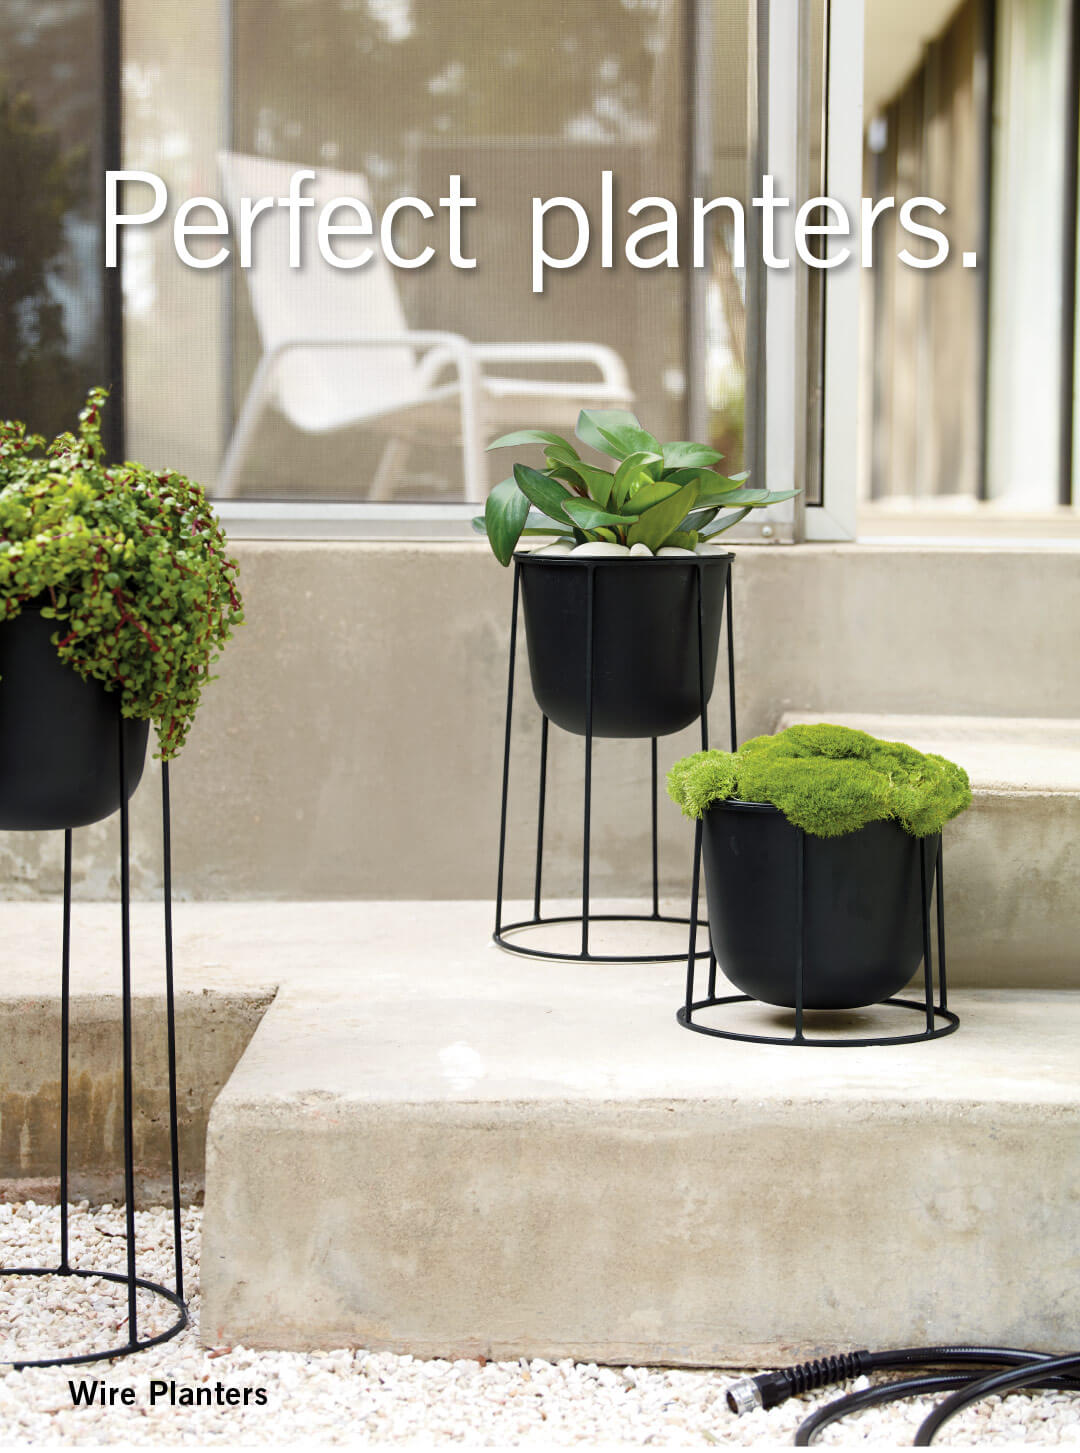 Perfect Planters